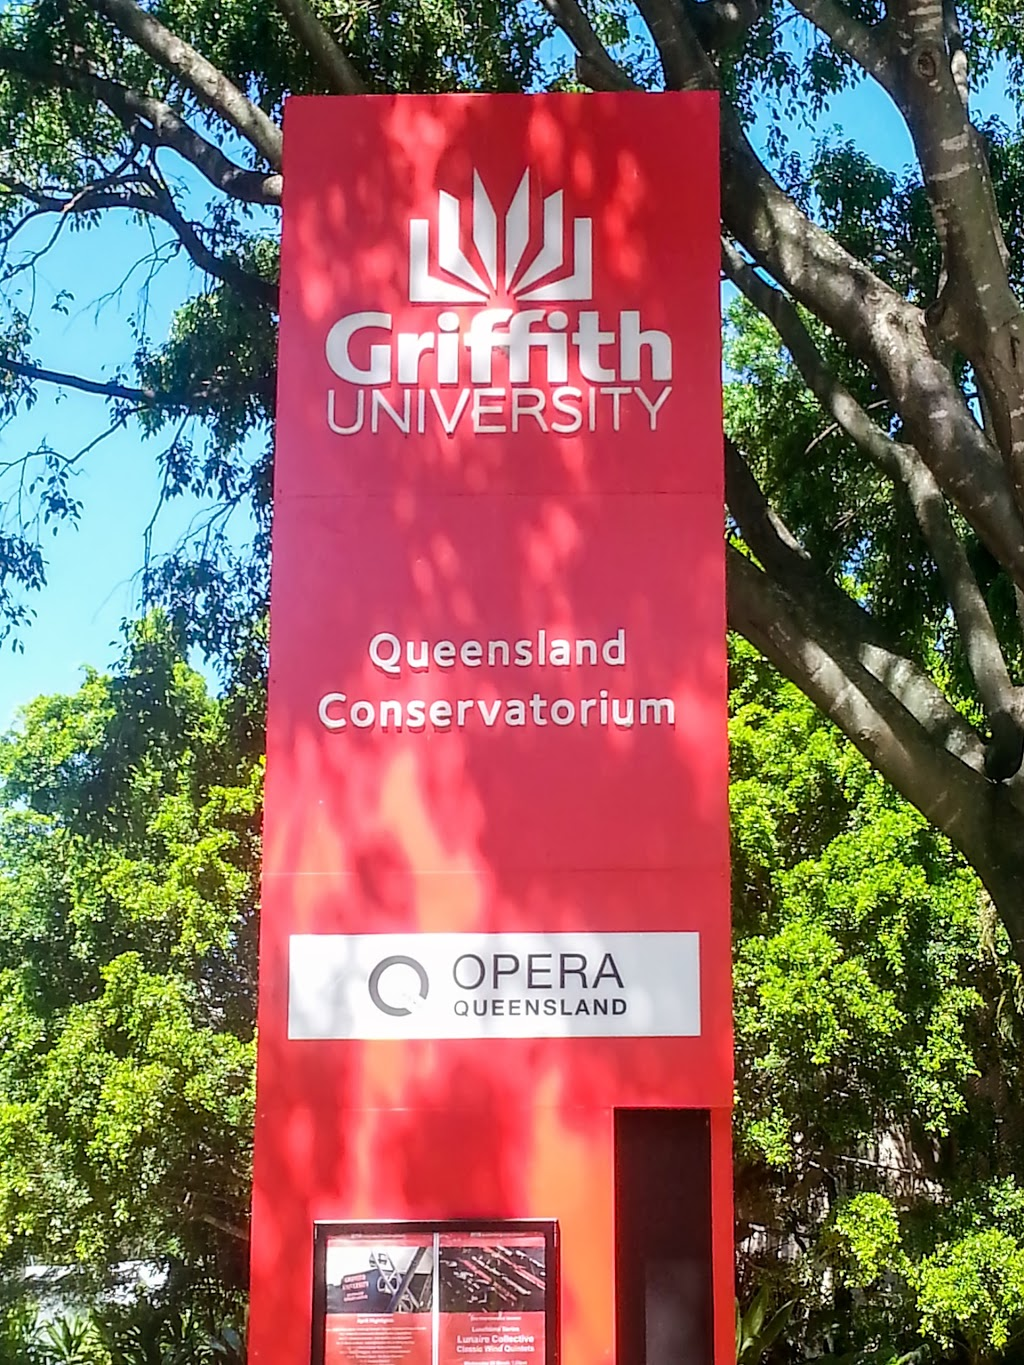 Griffith University Queensland Conservatorium Library | library | S01/140 Grey St, South Brisbane QLD 4101, Australia | 0737355555 OR +61 7 3735 5555